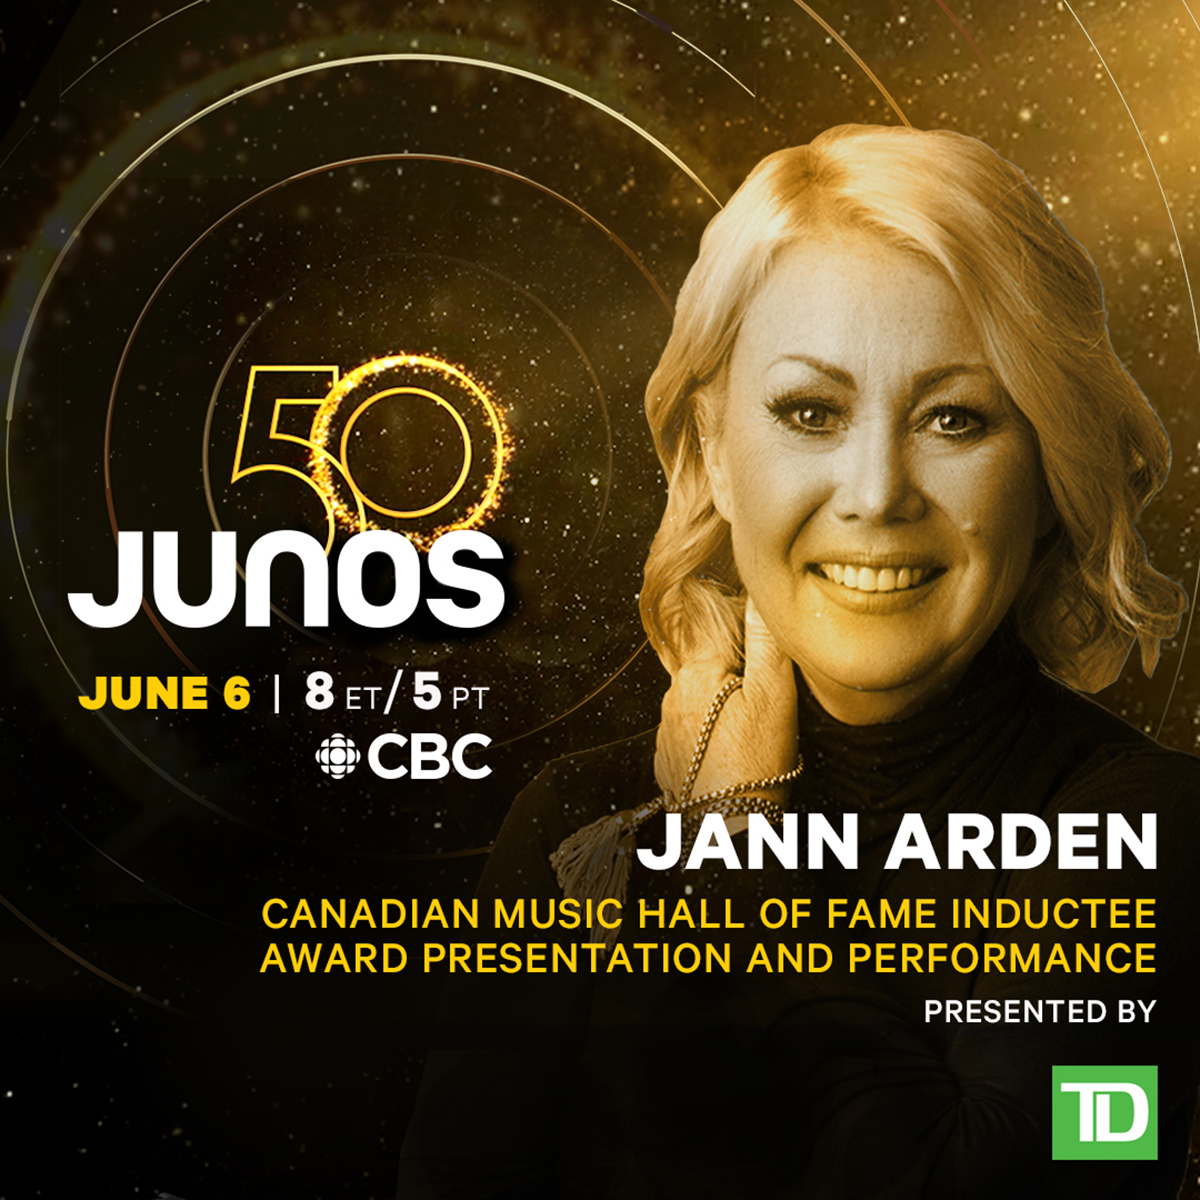 Jann Arden to perform from The Canadian Music Hall of Fame at The 2021 JUNO Awards on CBC